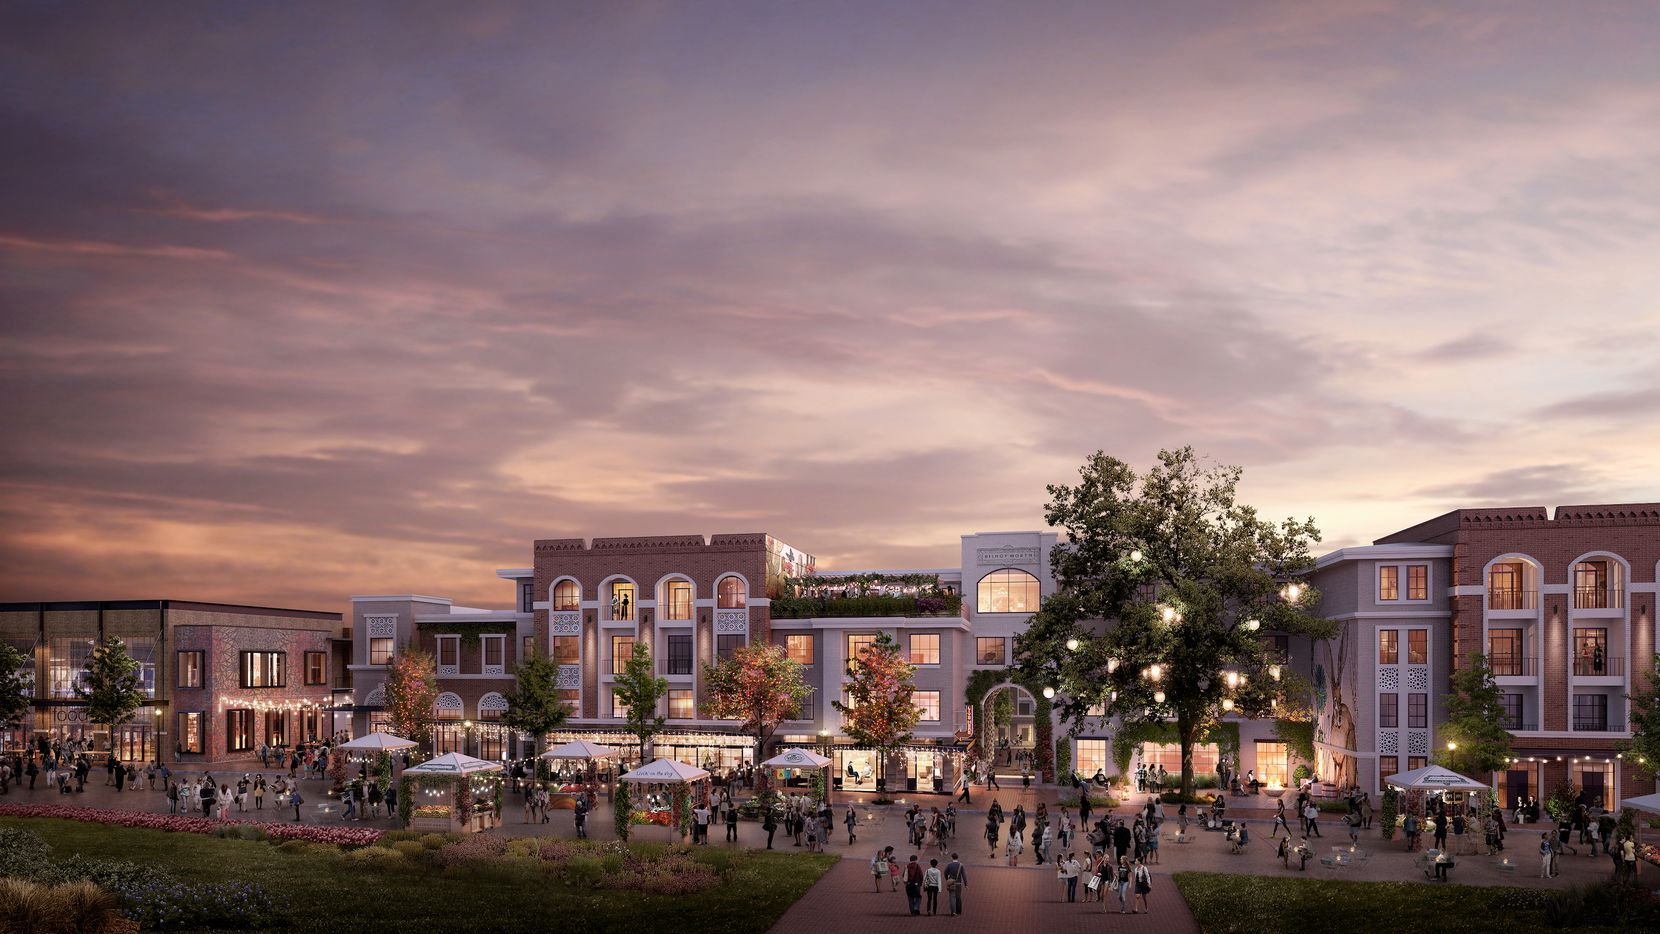 The Bishop Arts project is one of the most anticipated developments in Dallas' booming north Oak Cliff neighborhood.